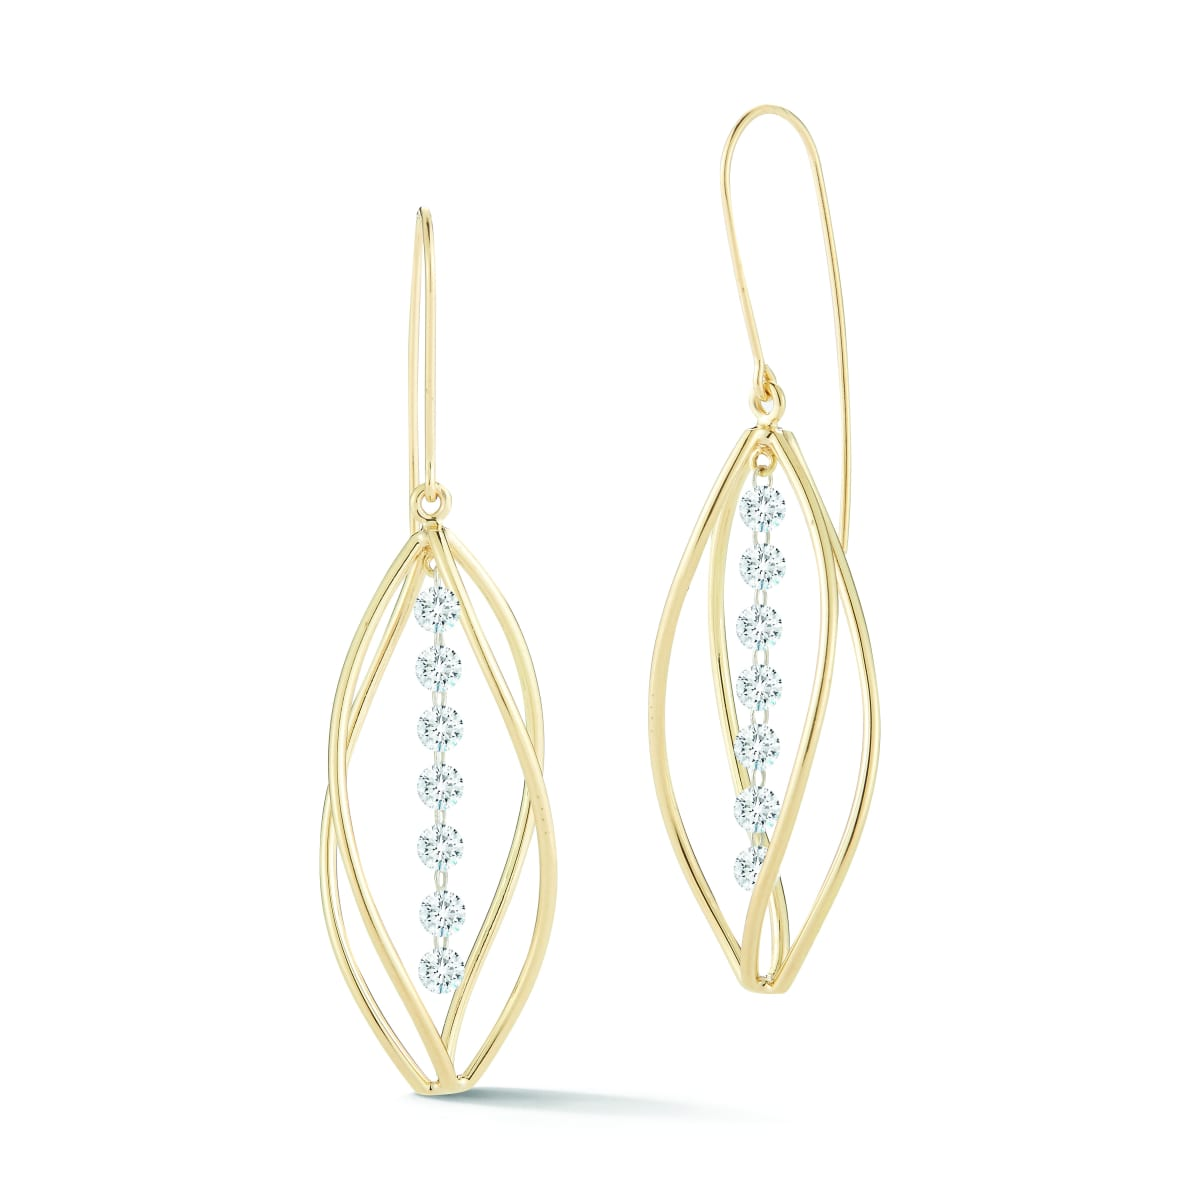 Willow Diamonds designed by Jacqueline Earle, If You Love Diamonds... Set Them Free!